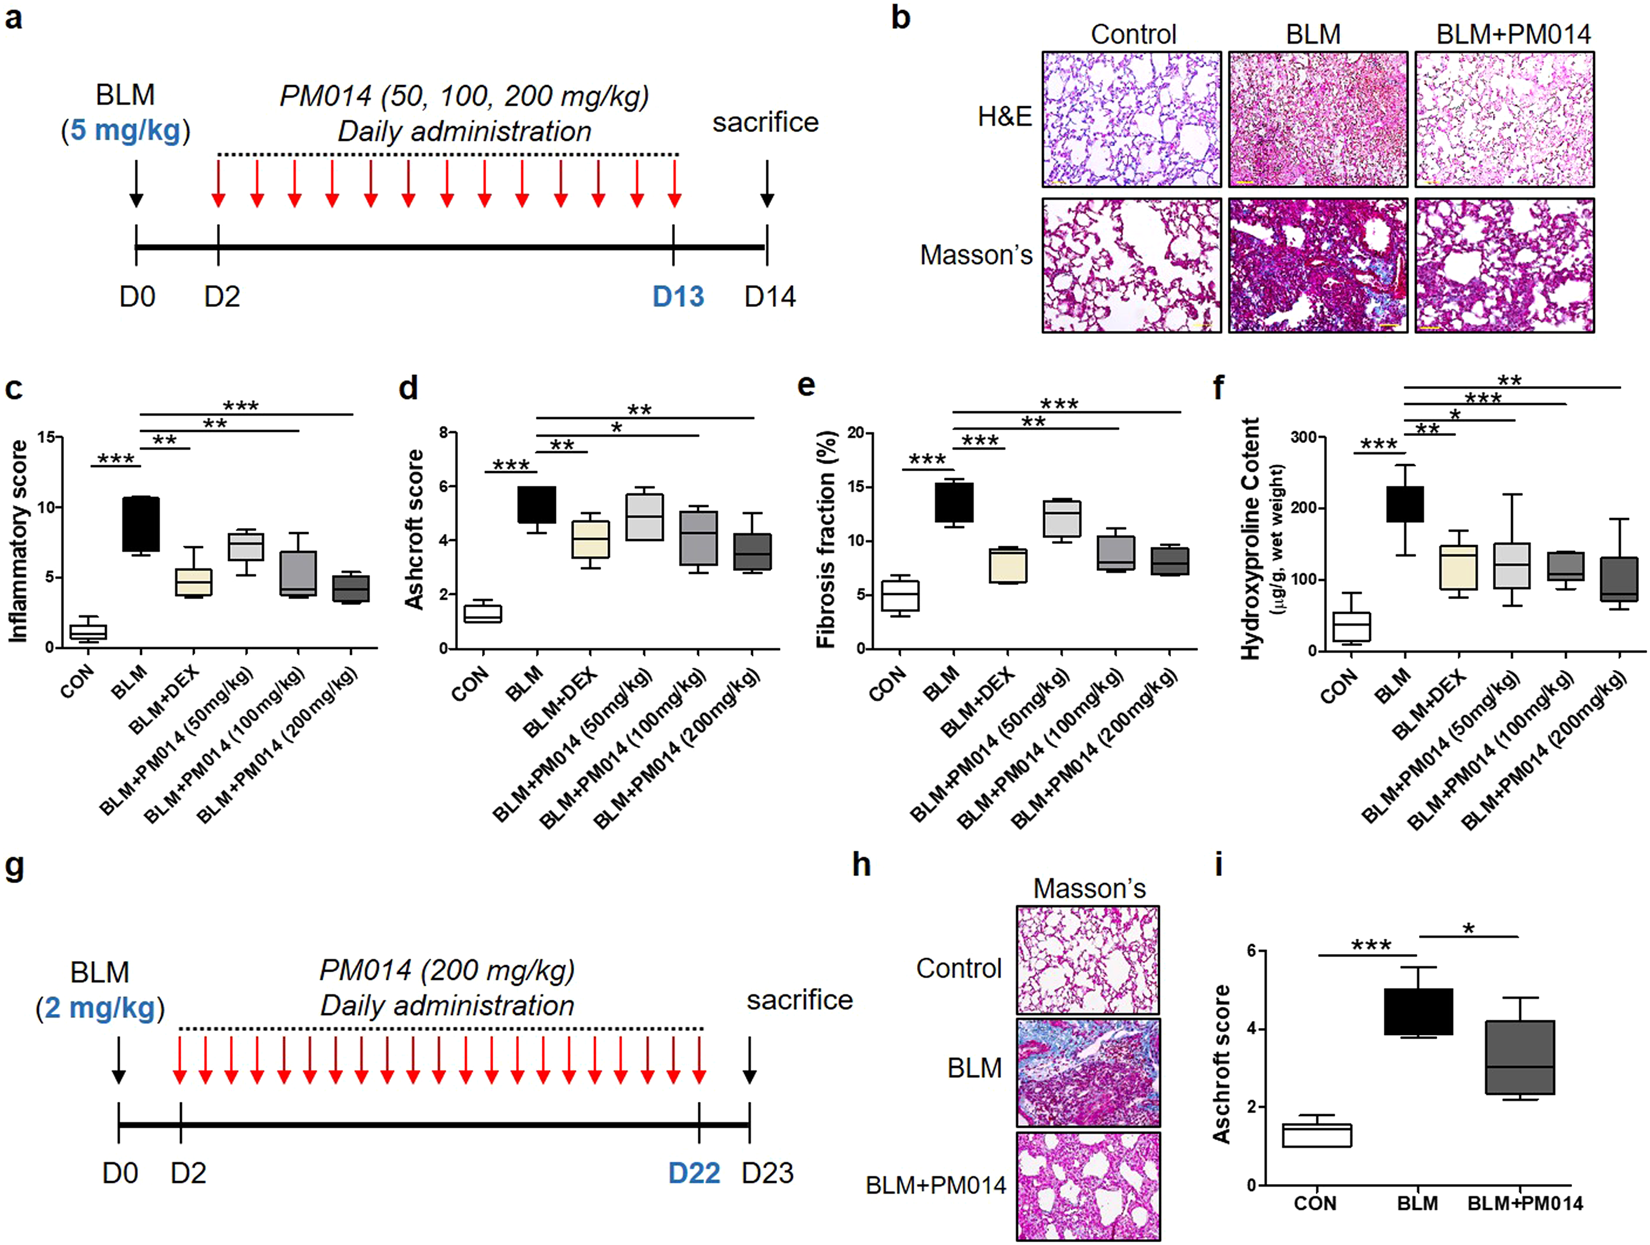 A standardized herbal extract PM014 ameliorates pulmonary fibrosis